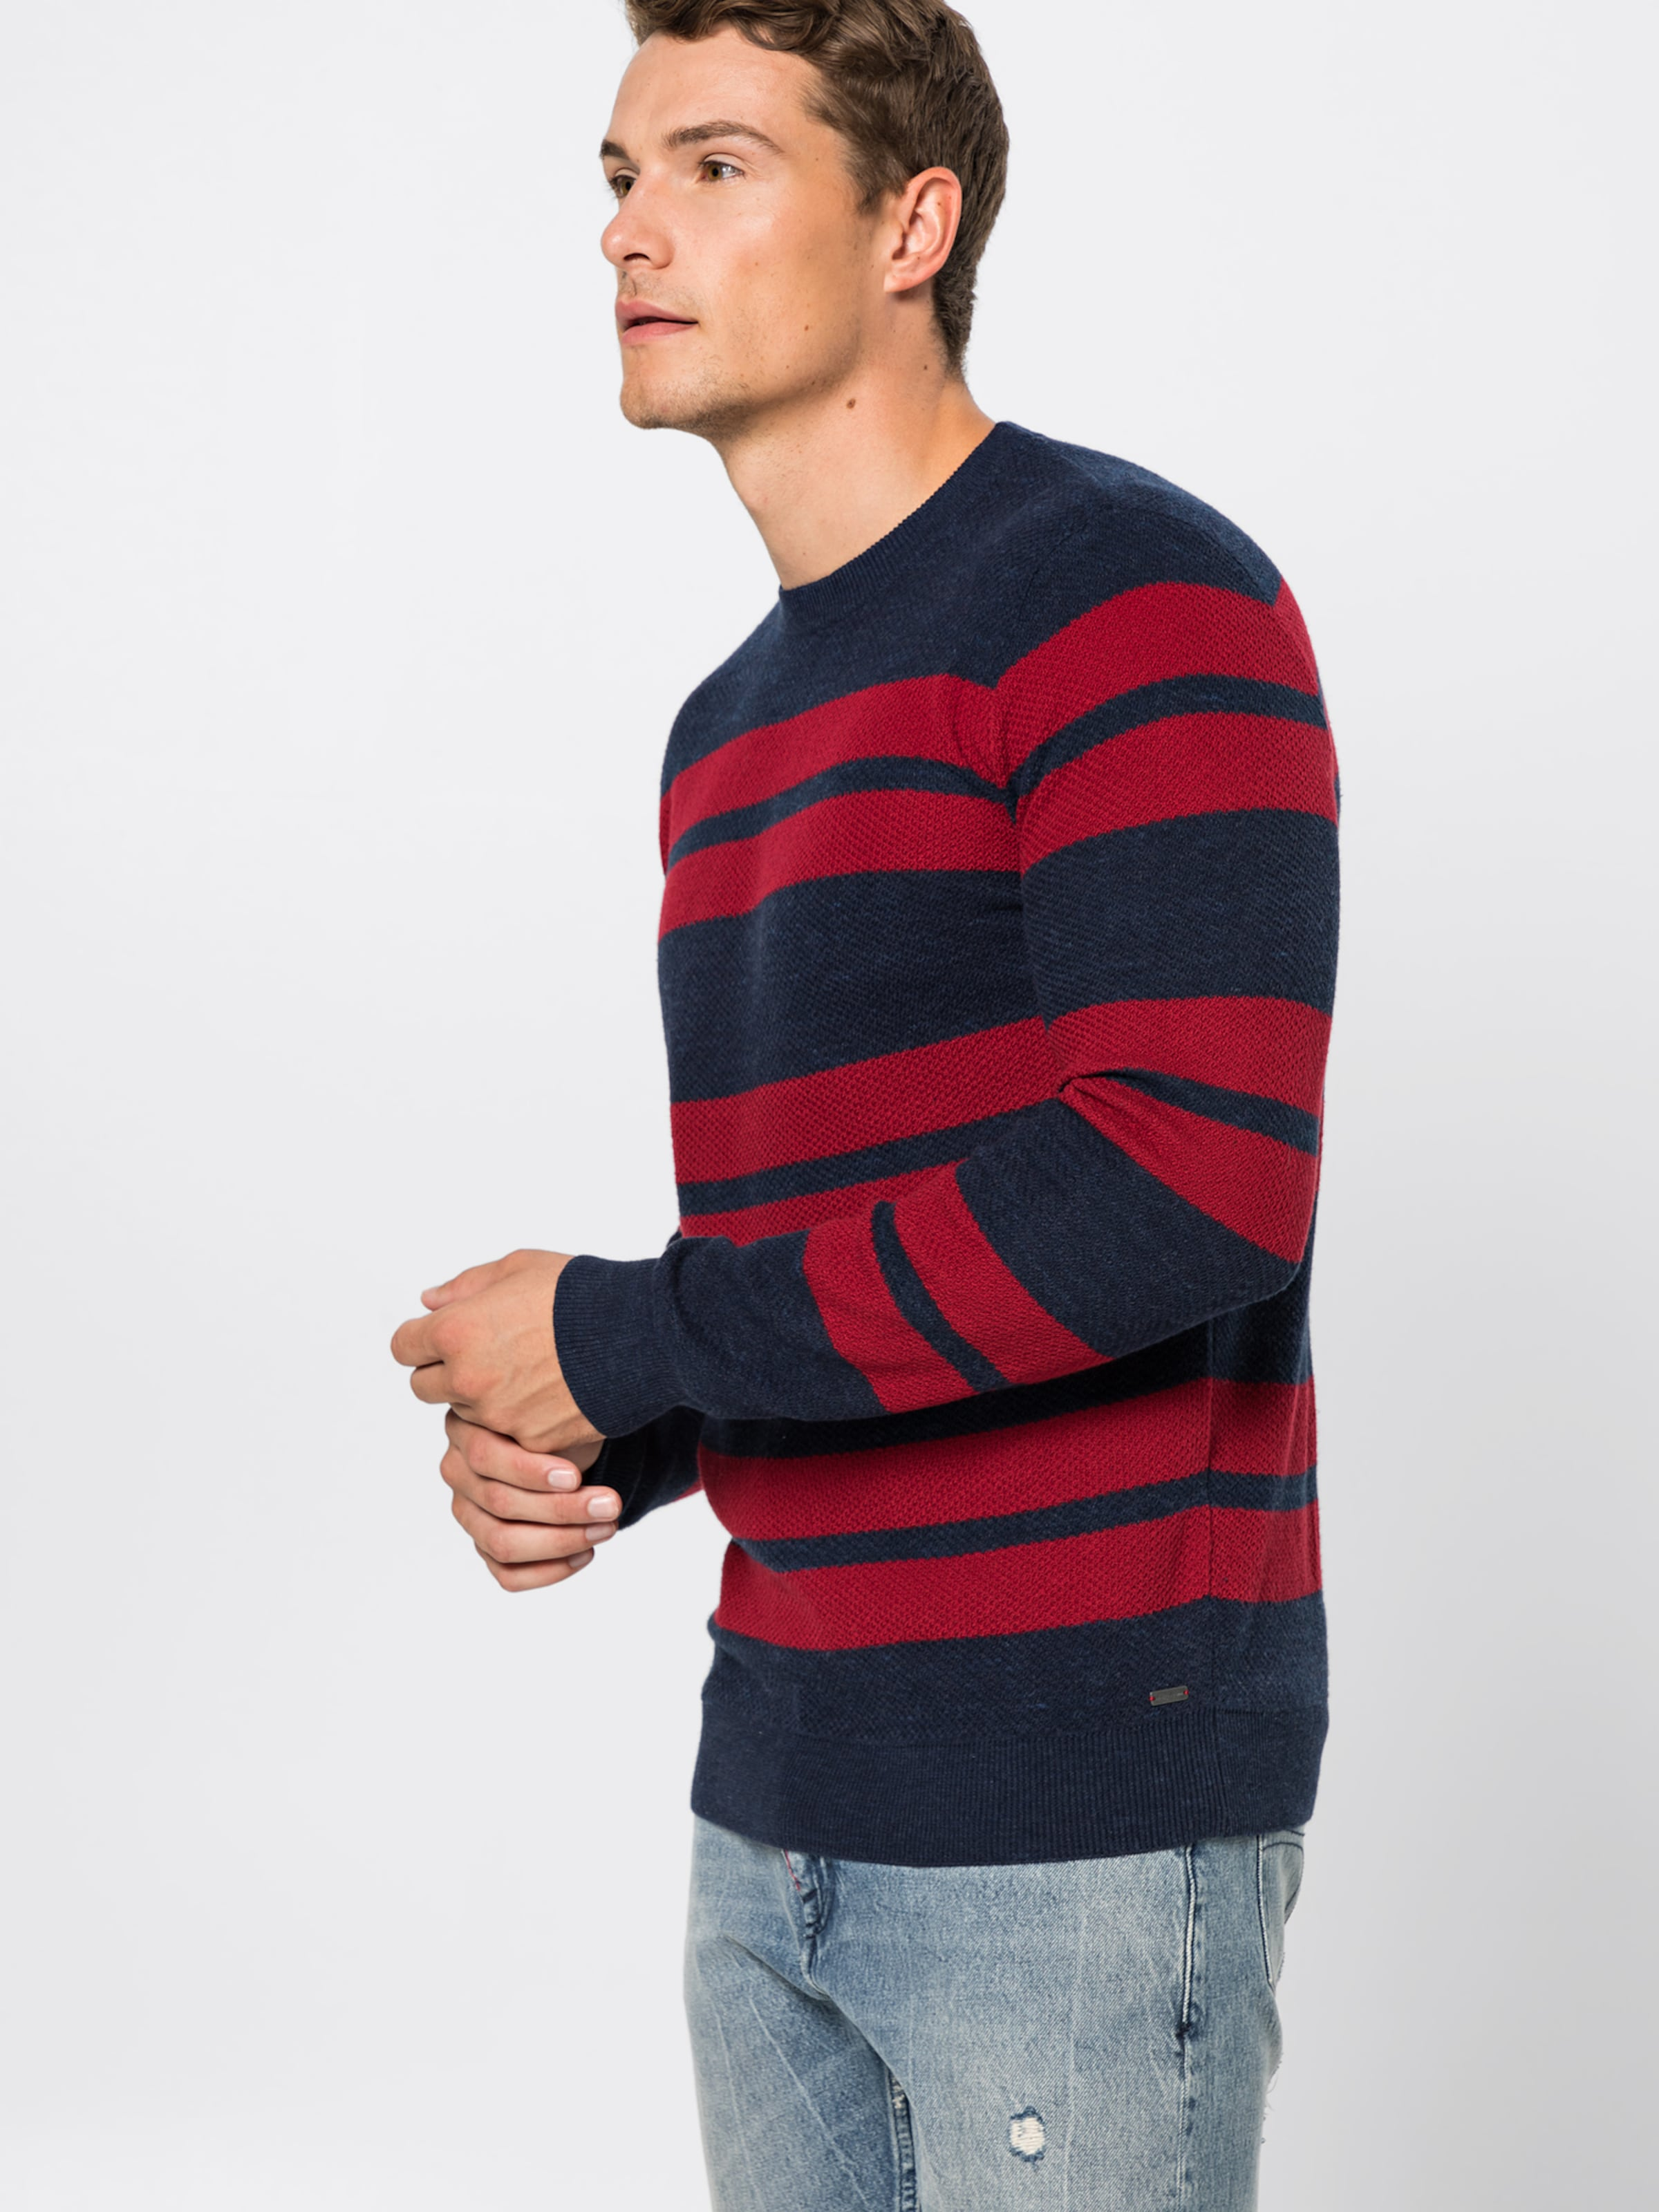 Tailor Tailor Tom Pullover Pullover In Tom NavyRot O0knw8P